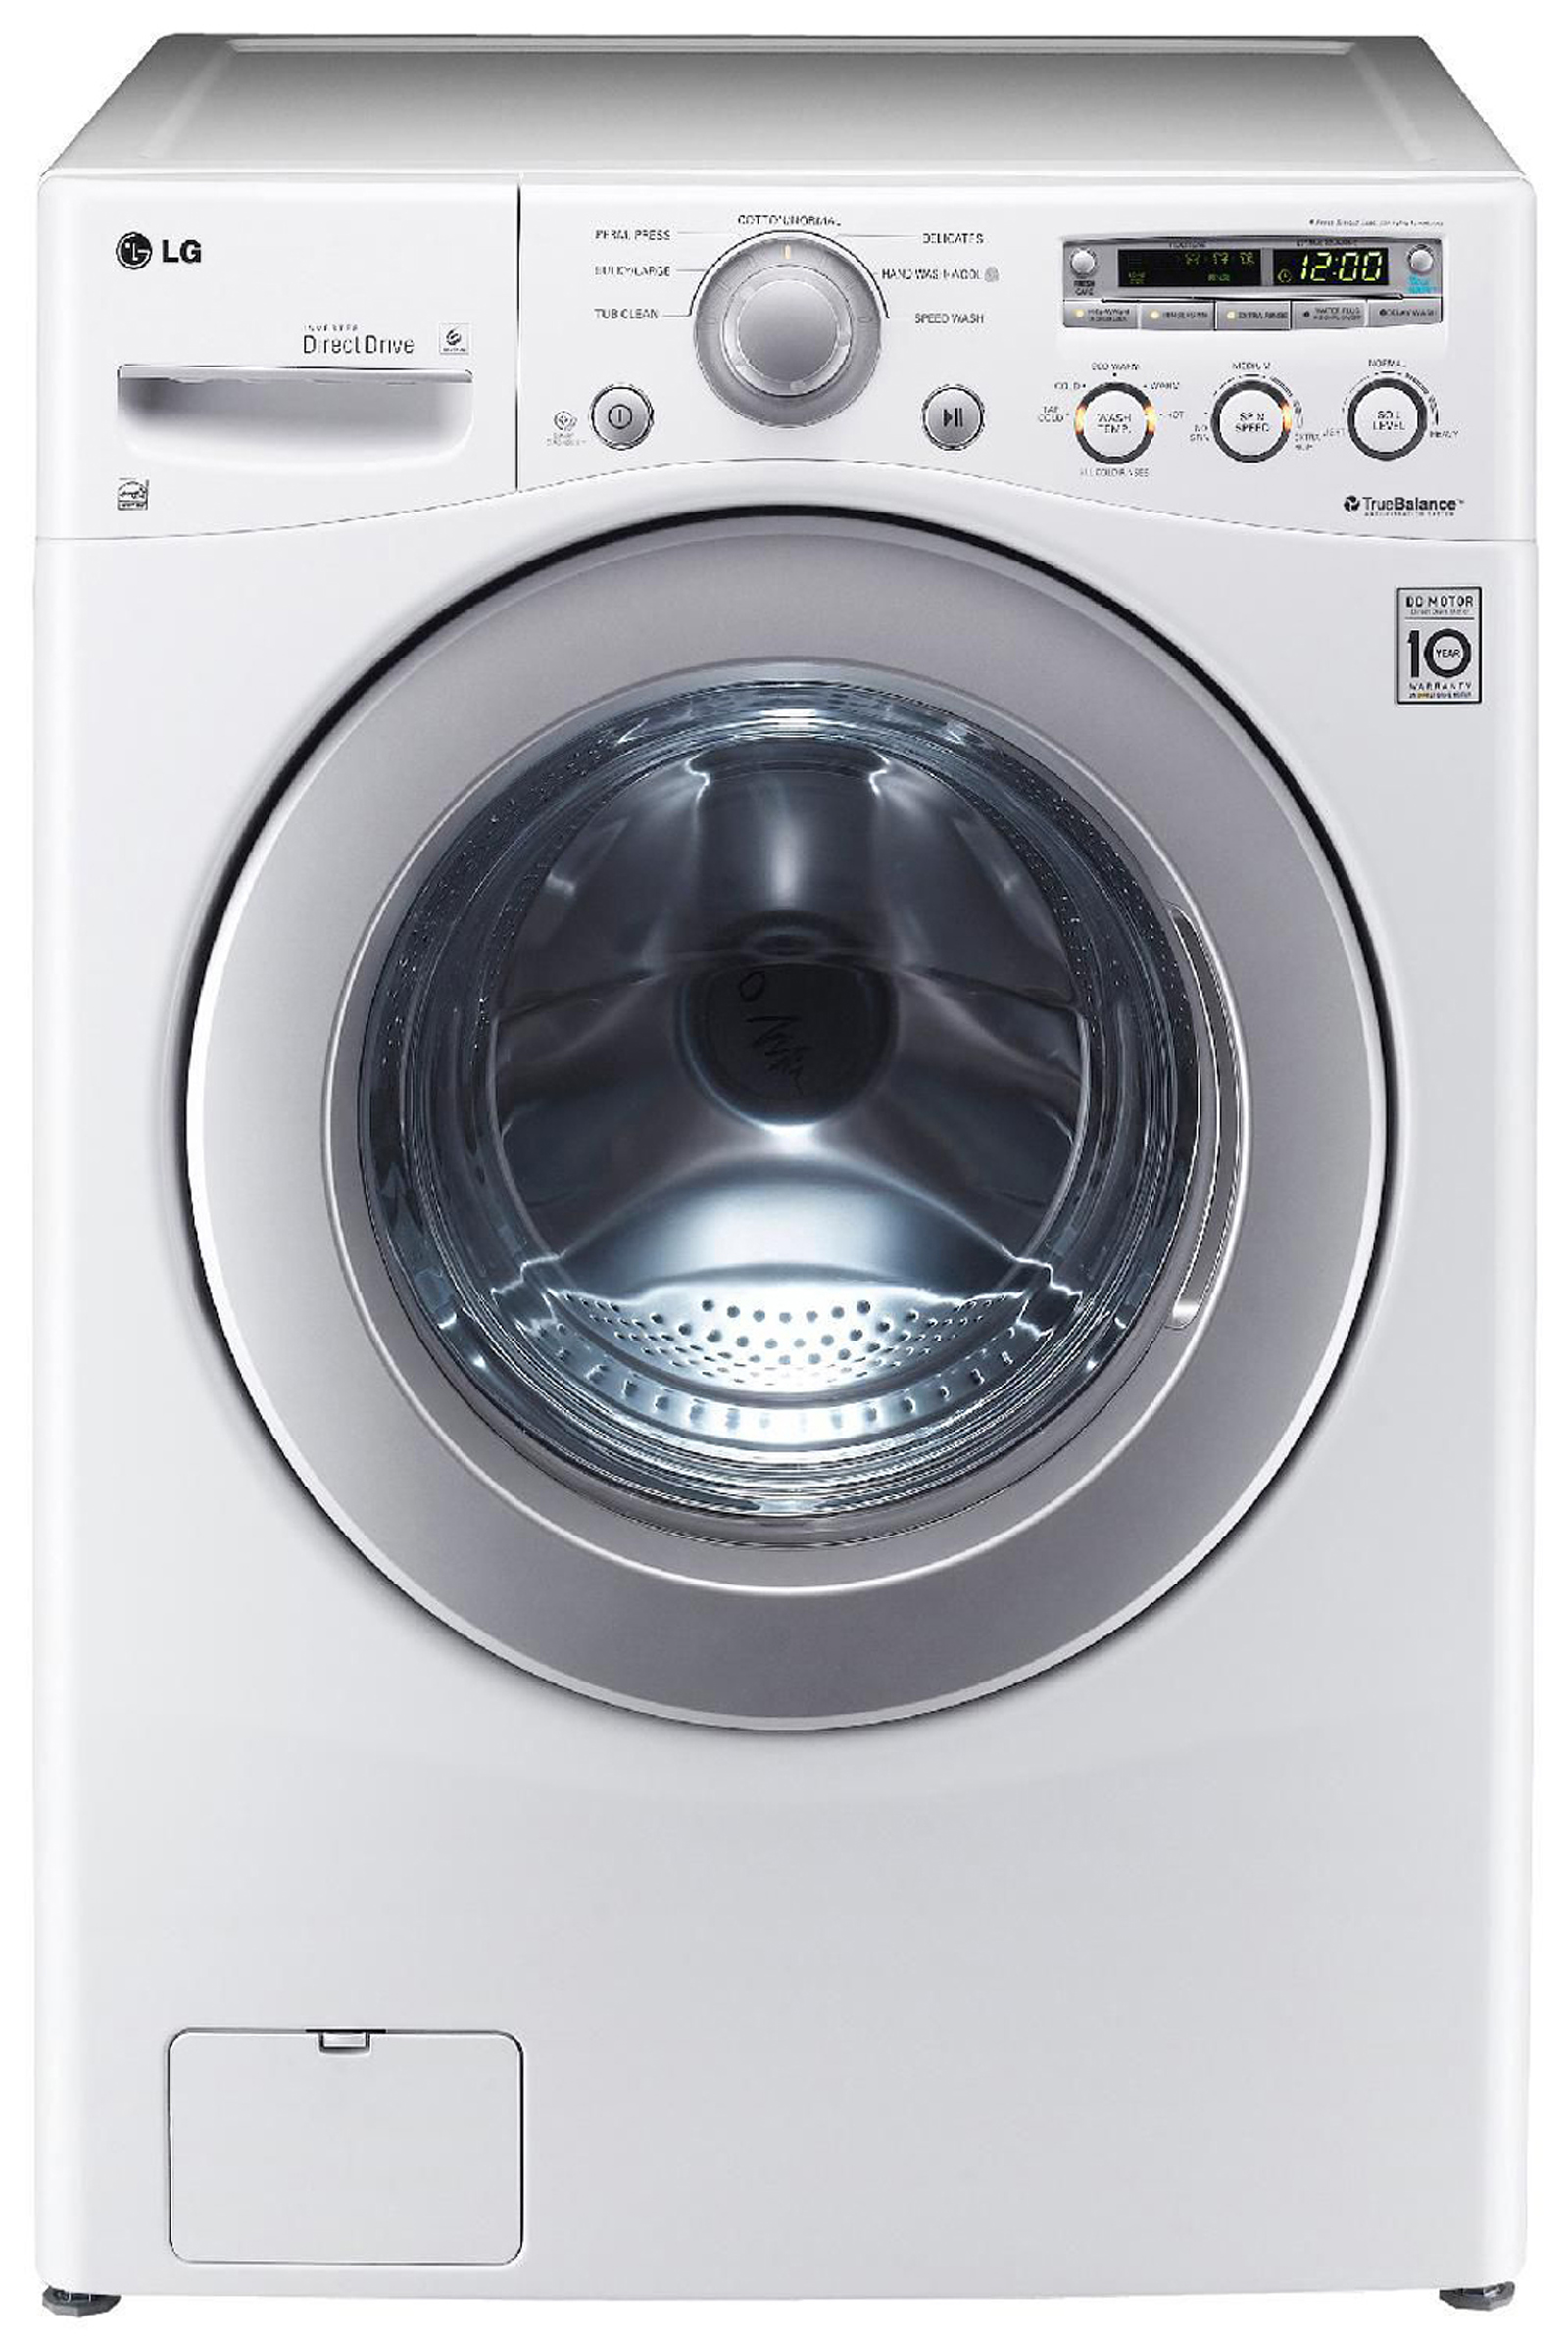 Lg Front Load Washer 3.6 Cu. Ft. Wm2250cw - Sears